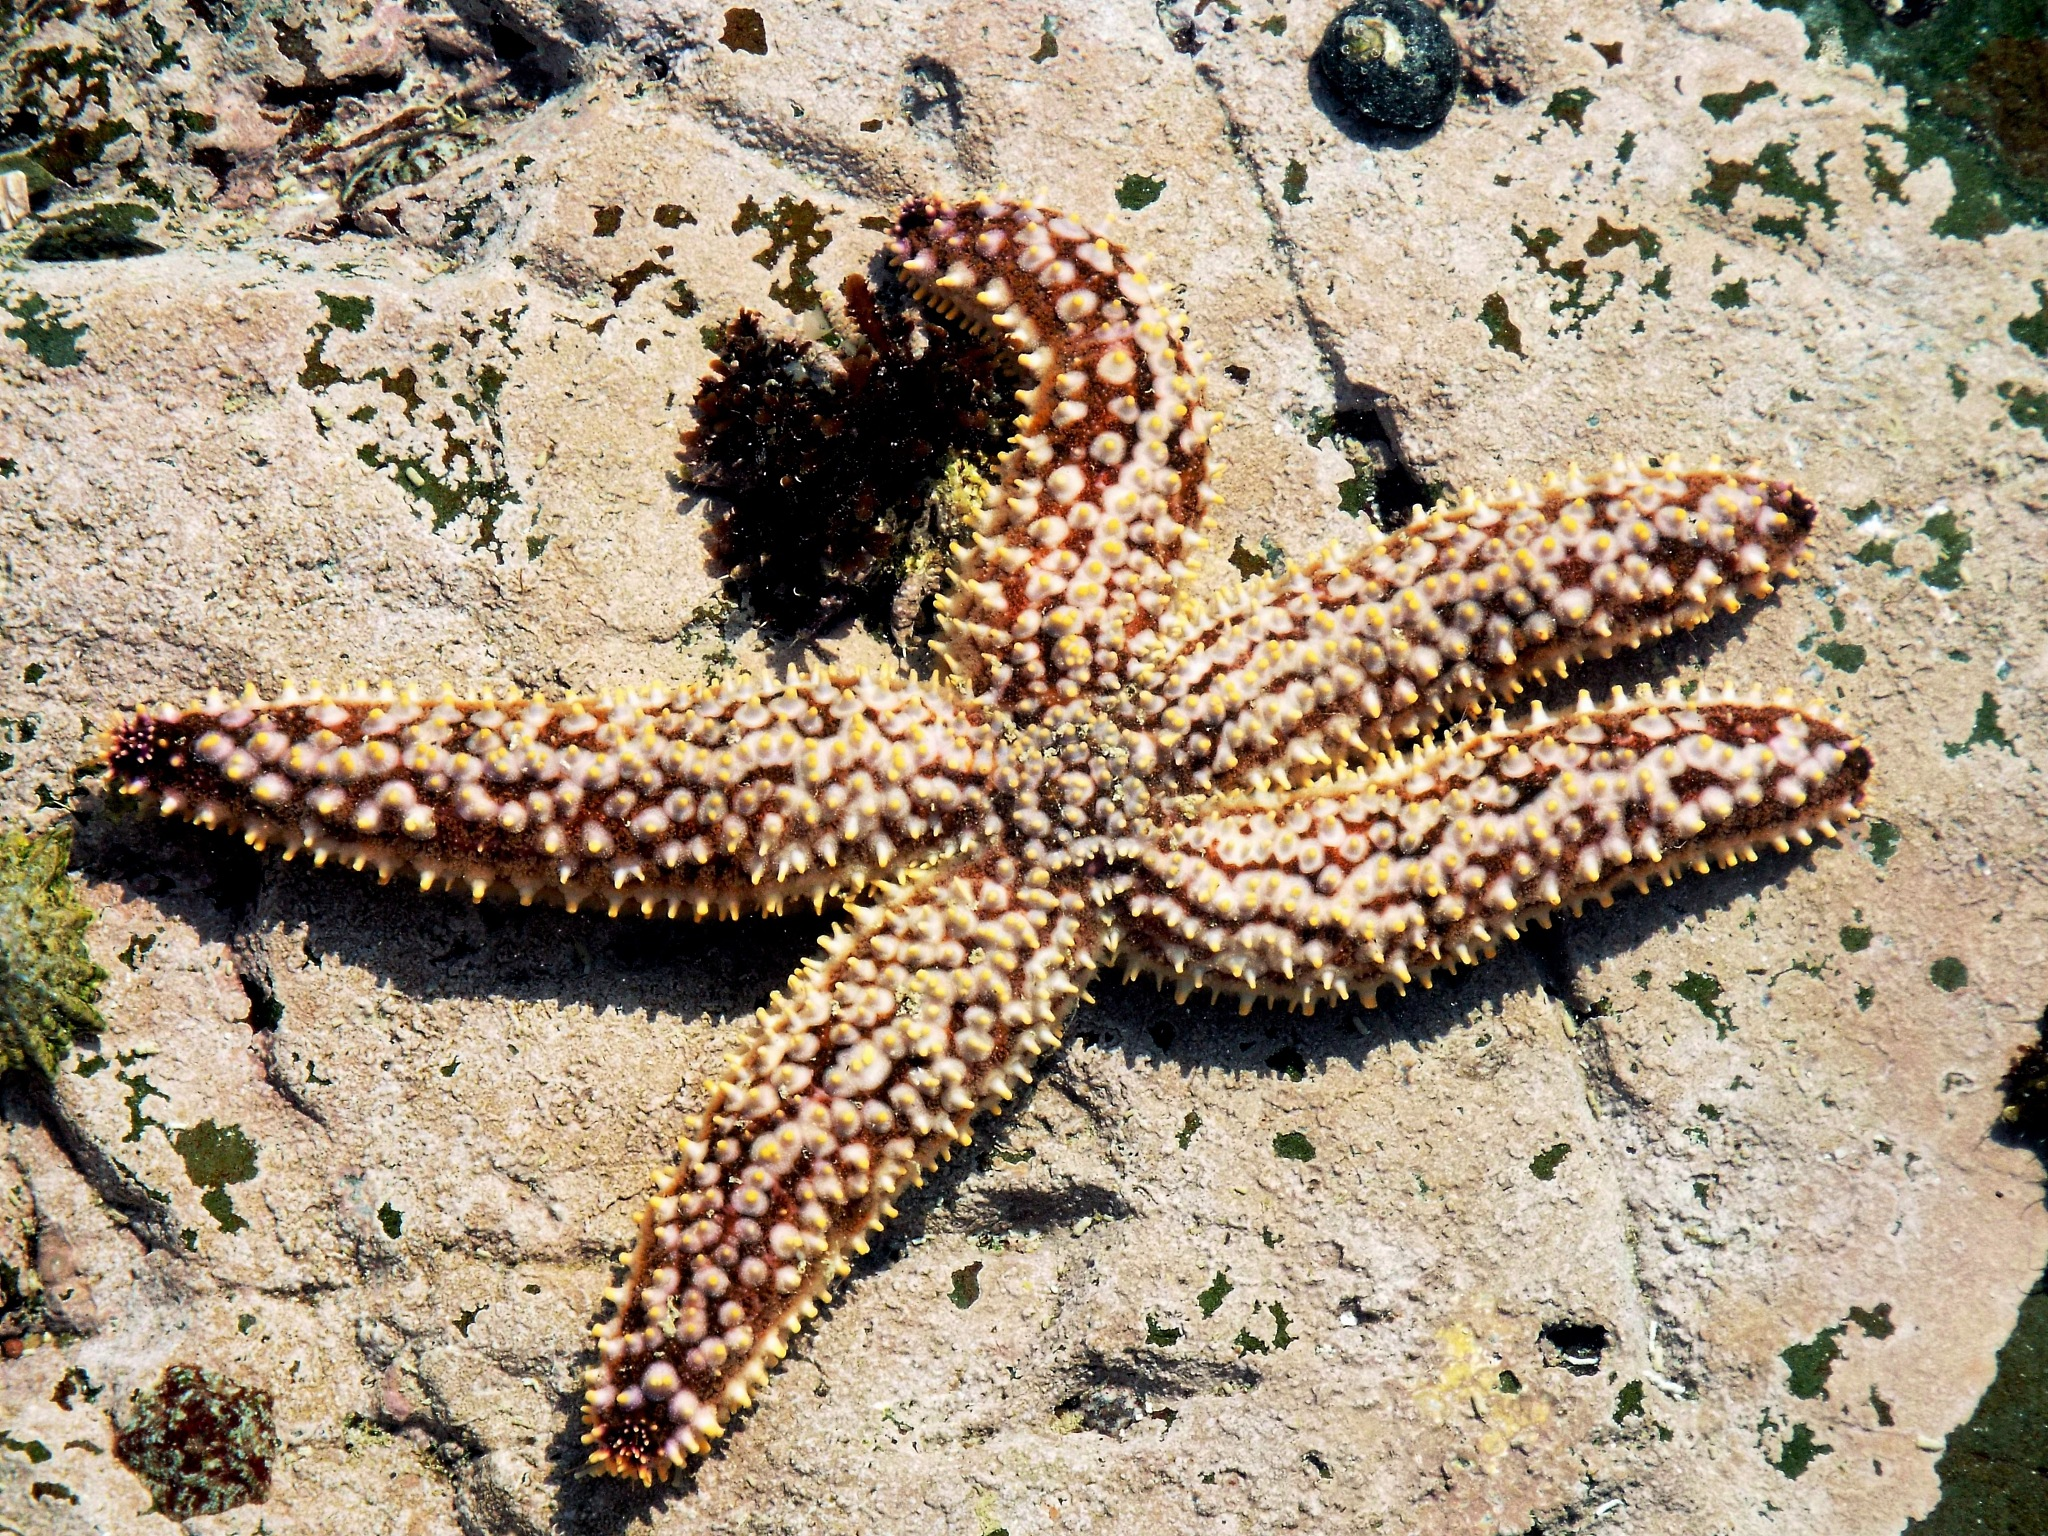 Sea Star by Japie van der Berg